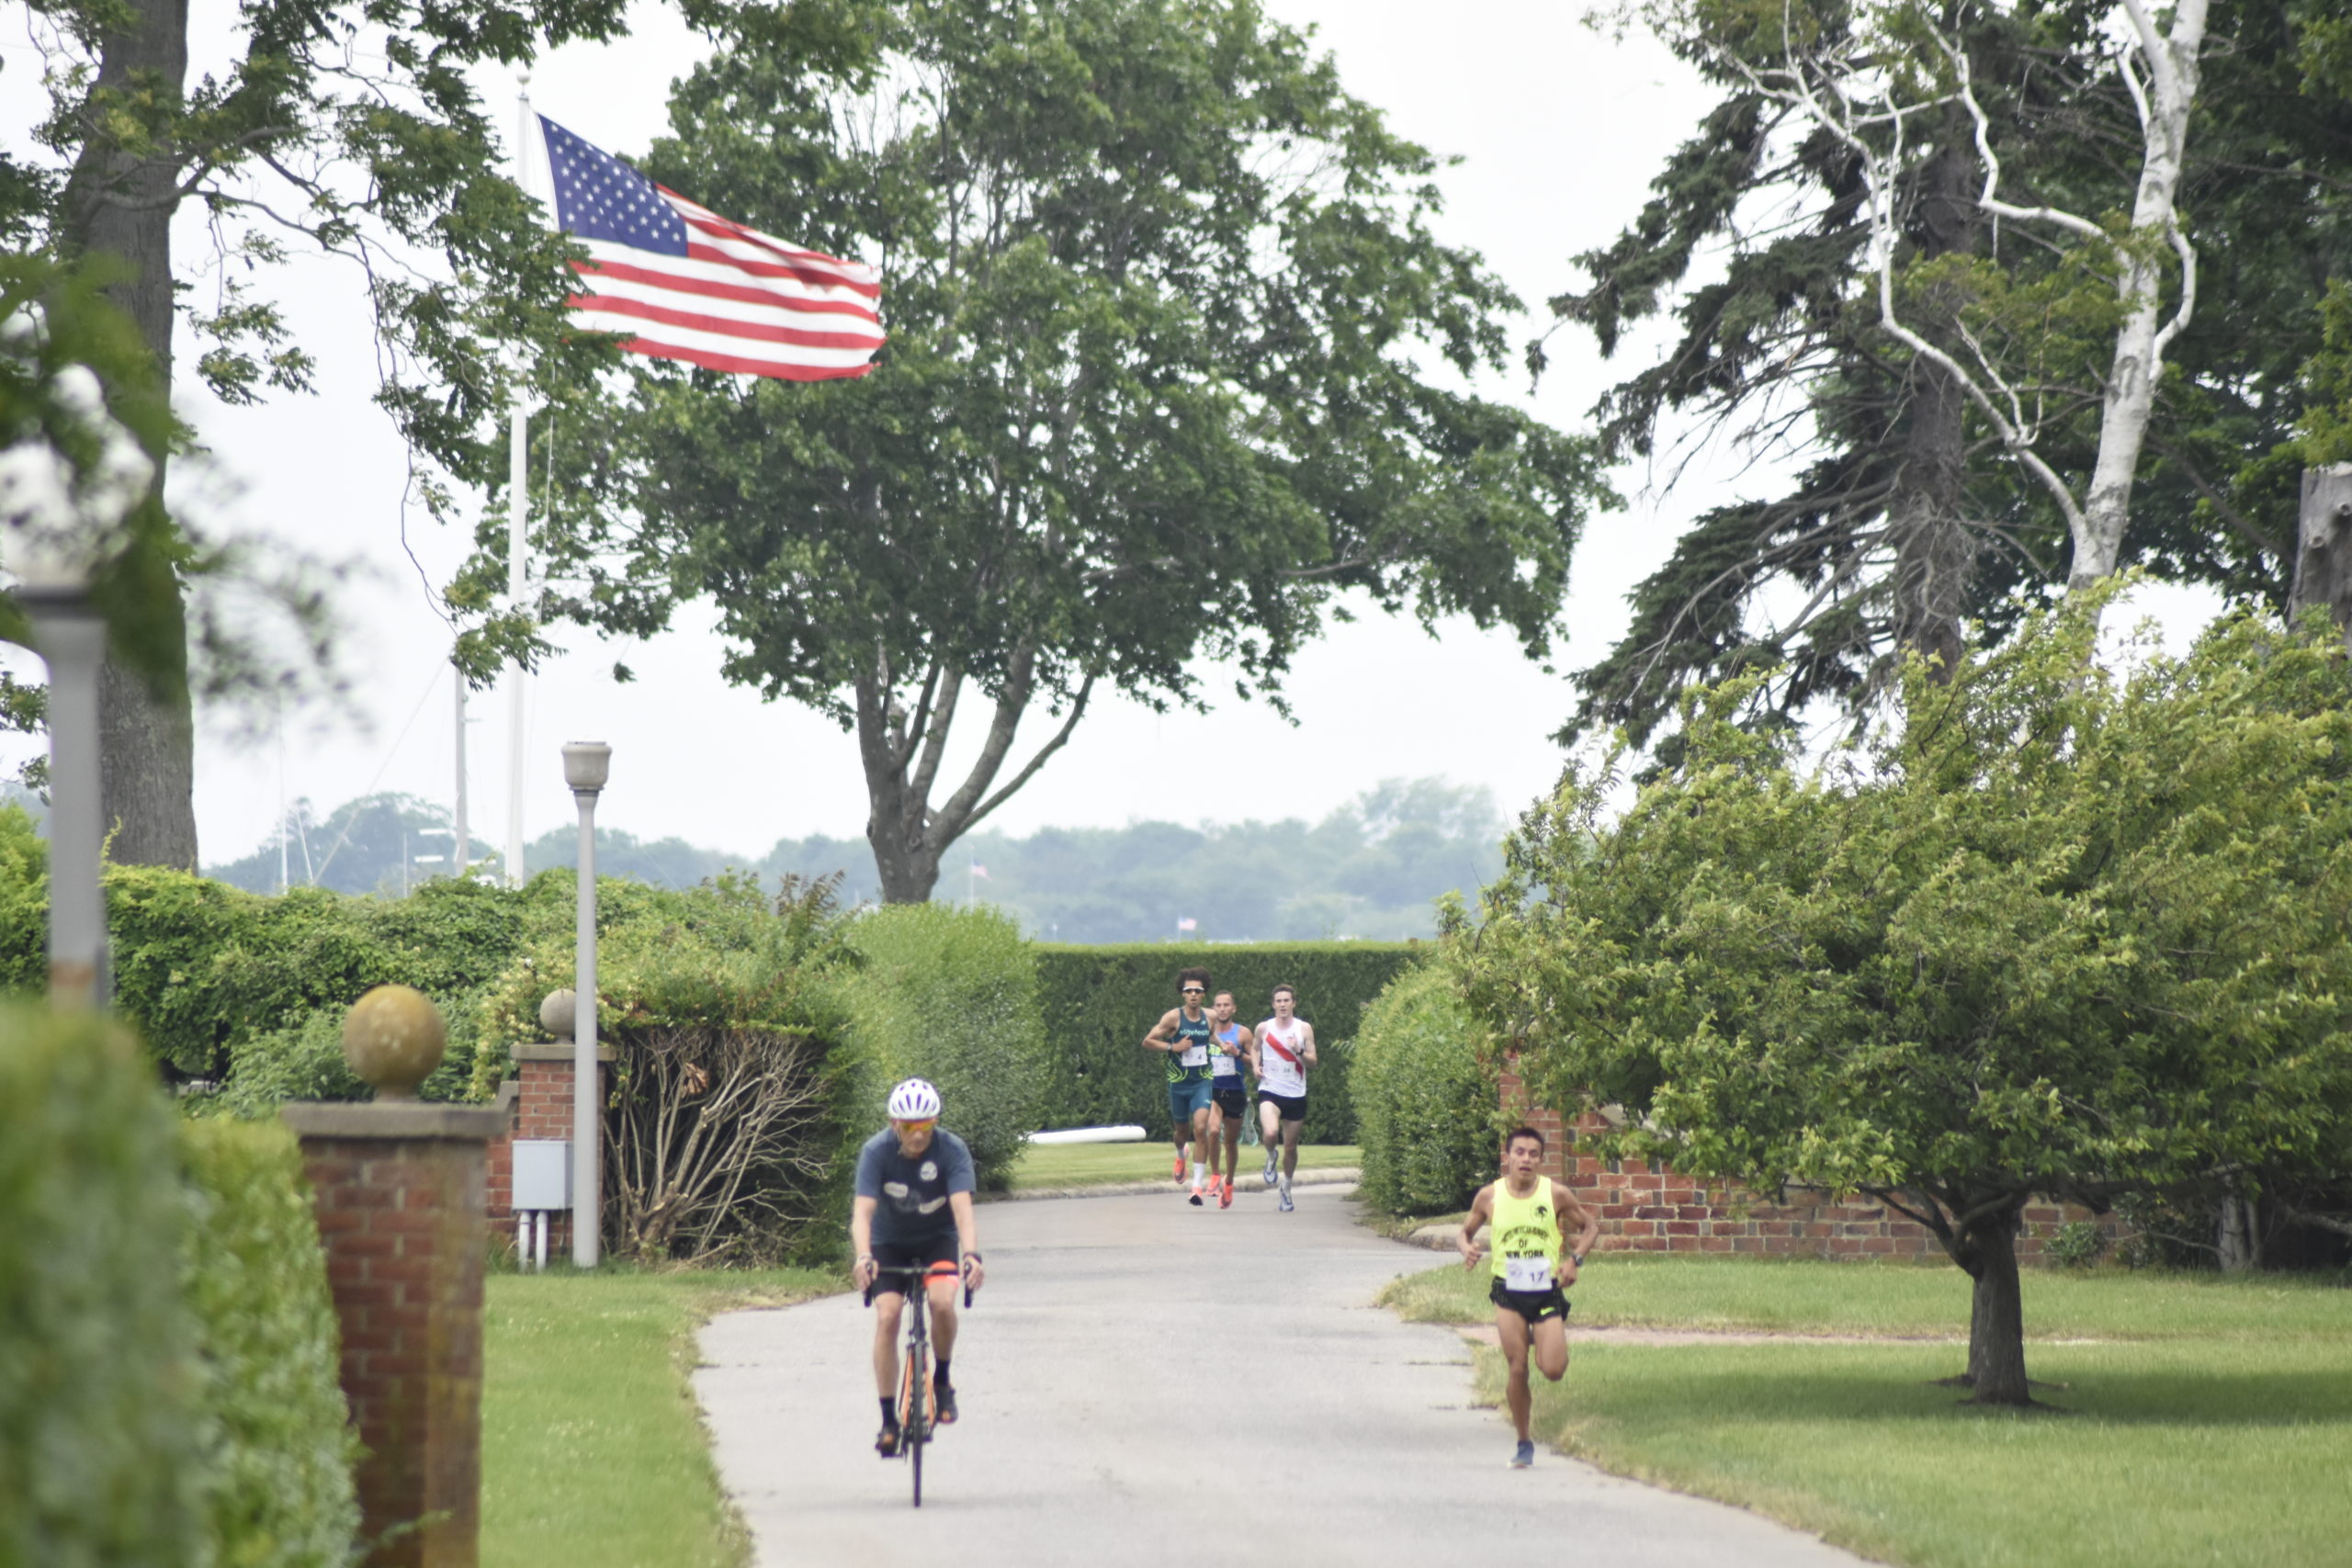 Runners start to make their way through the Derring Harbor portion of the course.